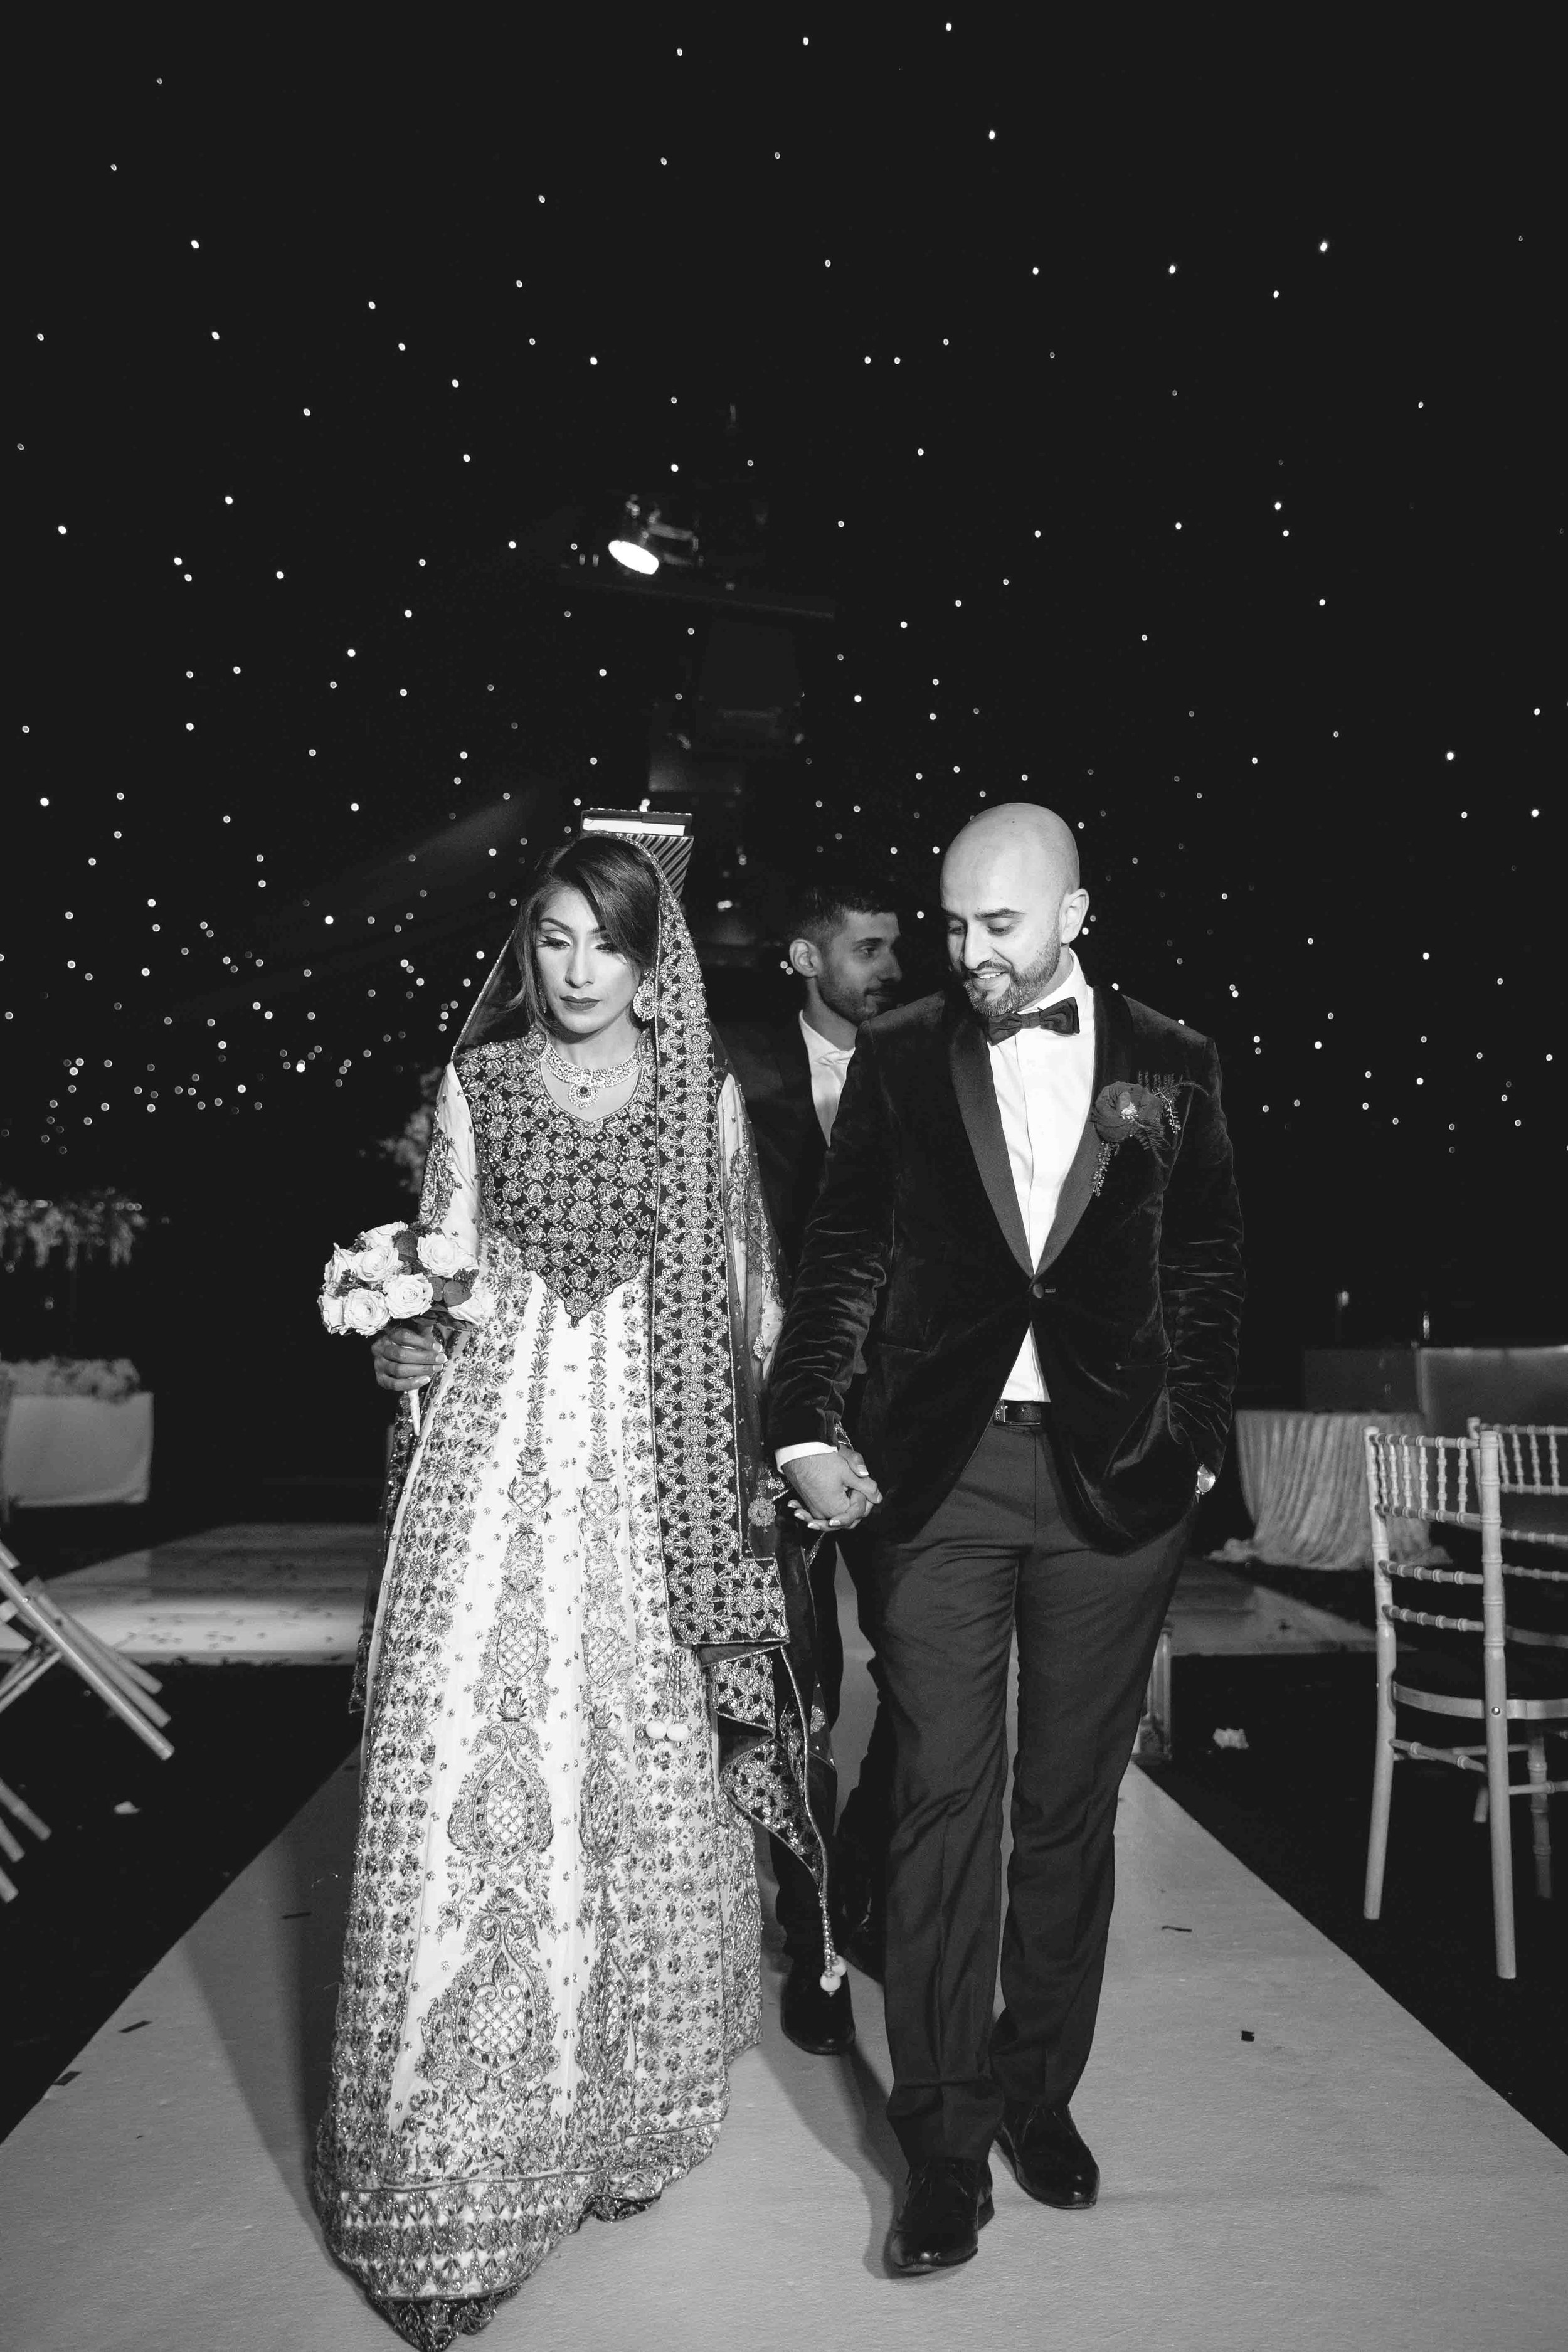 Asian Wedding Photographer Opu Sultan Photography Lyme Park Scotland Edinburgh Glasgow London Manchester Liverpool Birmingham Wedding Photos prewed shoot Azman & Saira Blog-161.jpg